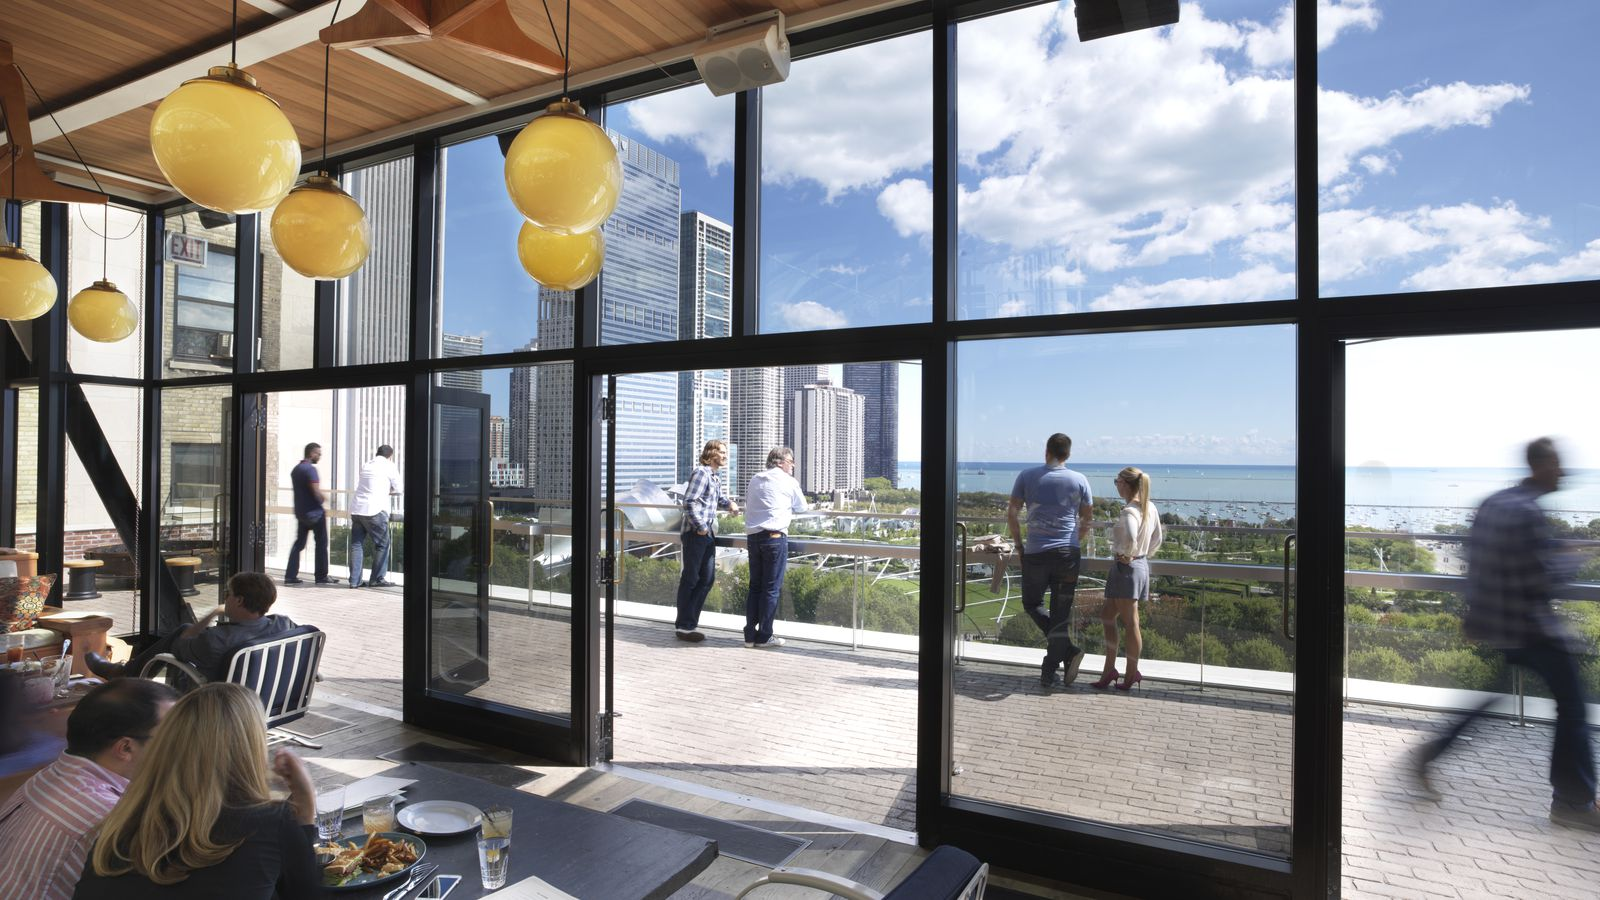 Cindy S Rooftop Adding Outdoor Terrace Bar With Boozy